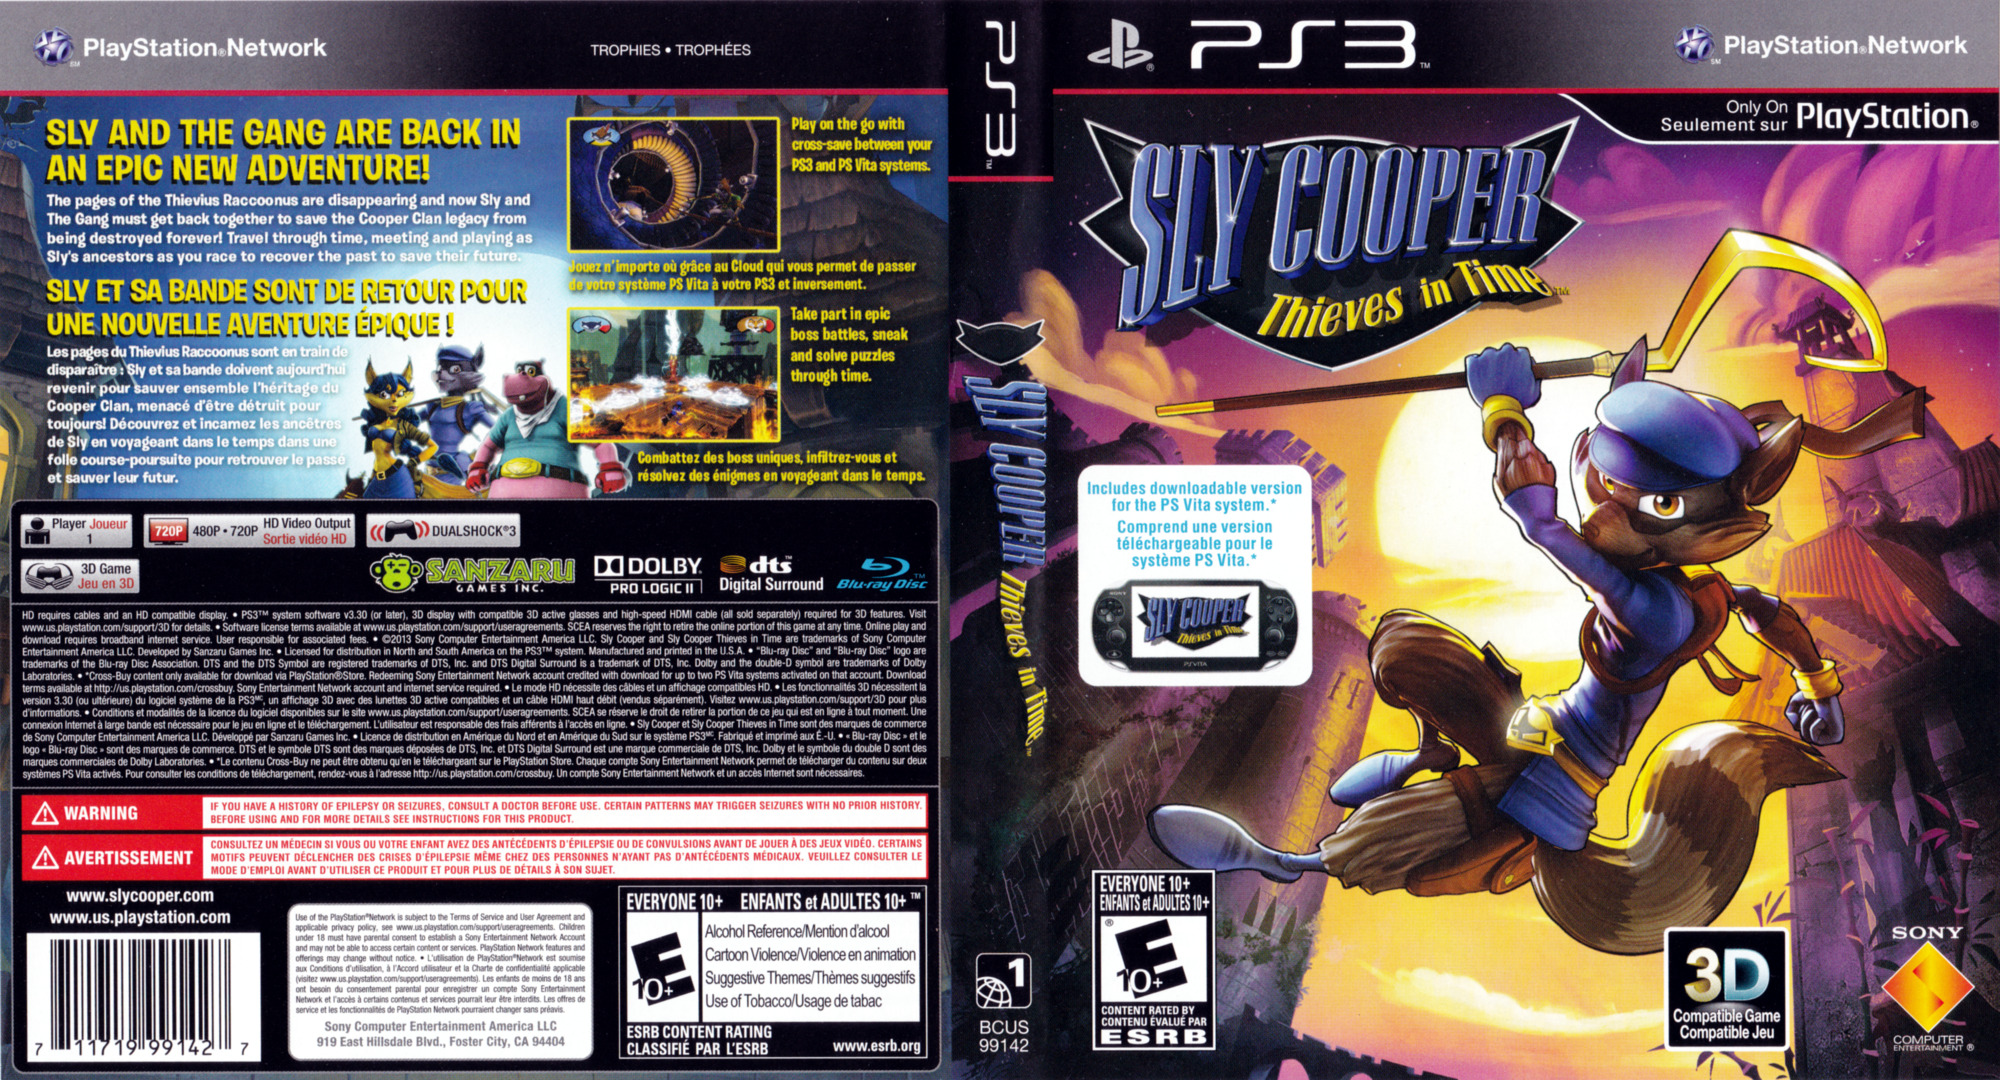 Sly Cooper: Thieves in Time PS3 coverfullHQ (BCUS99142)